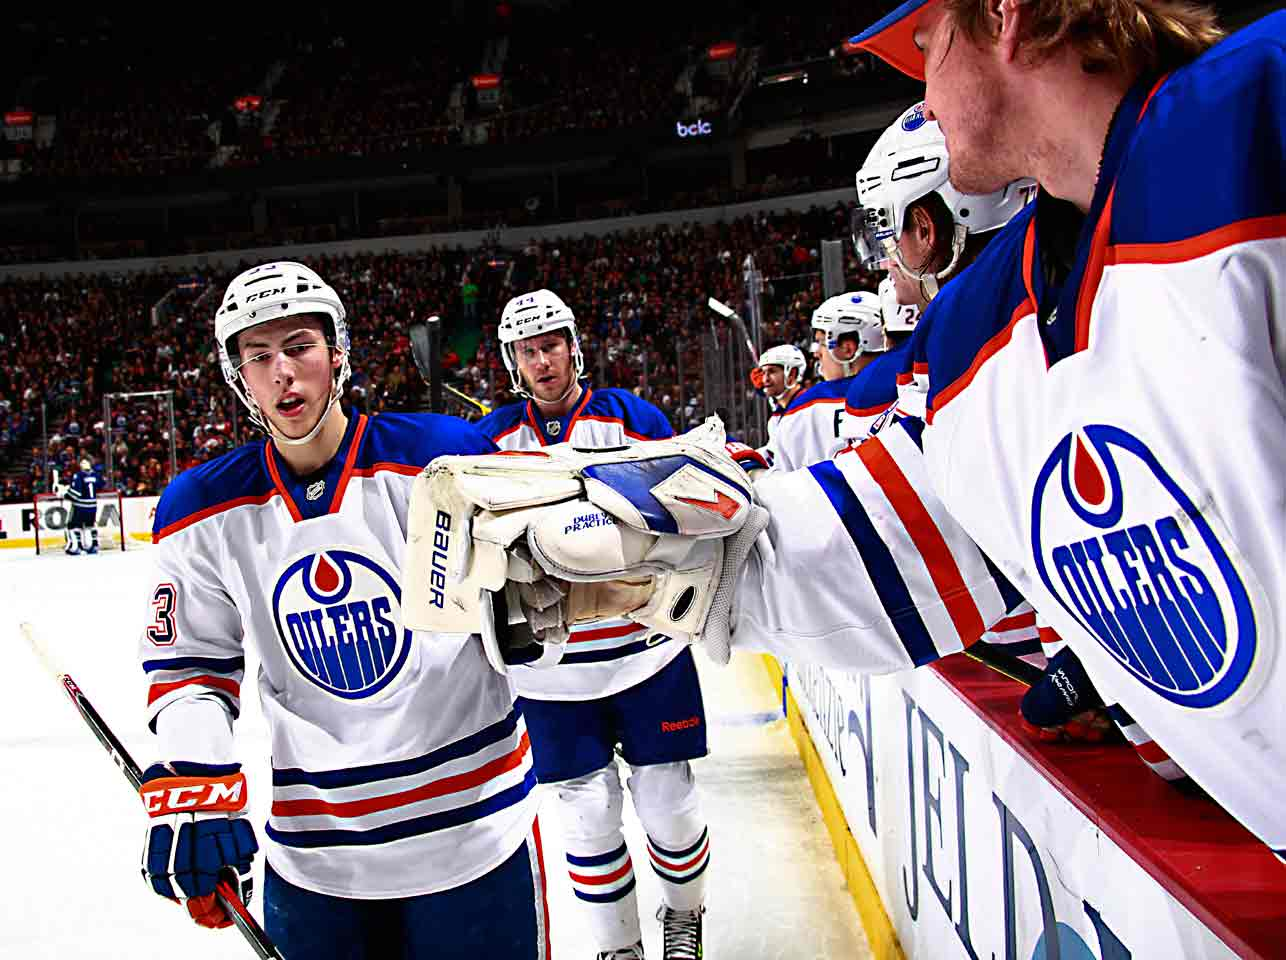 A deft playmaker, the top pick of 2011 tied for first in rookie scoring (18-34-52 in 62 games) but finished second behind Colorado's Gabriel Landeskog, 19, for the Calder, only the third time teens were 1-2 in the voting, and first since Bryan Berard and Jarome Iginla in '97. Three others earned votes: Hurricanes defenseman Justin Faulk, 19, Flyers center Sean Couturier, 19, and Devils blueliner Adam Larsson, 19.